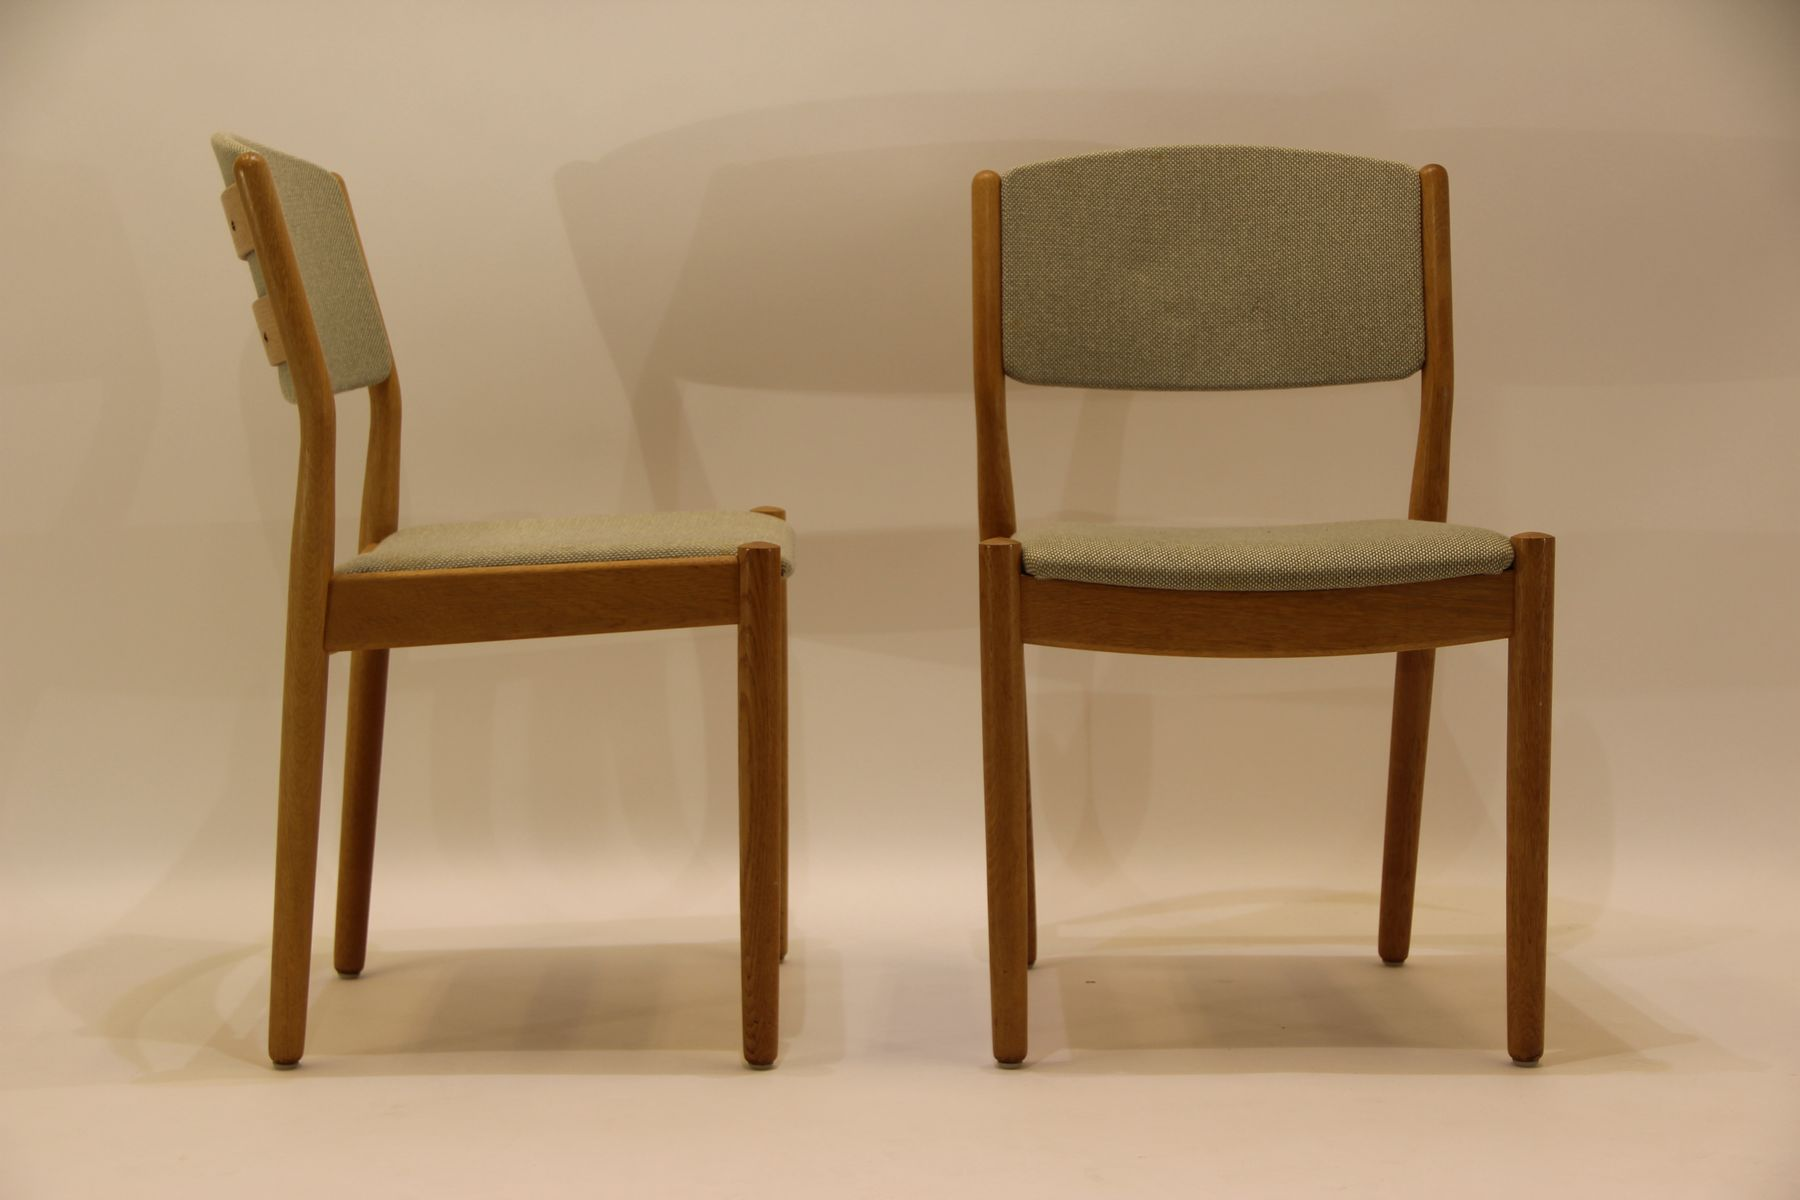 midcentury j oak  green fabric dining chairs by poul m  - midcentury j oak  green fabric dining chairs by poul m volther forfdb set of